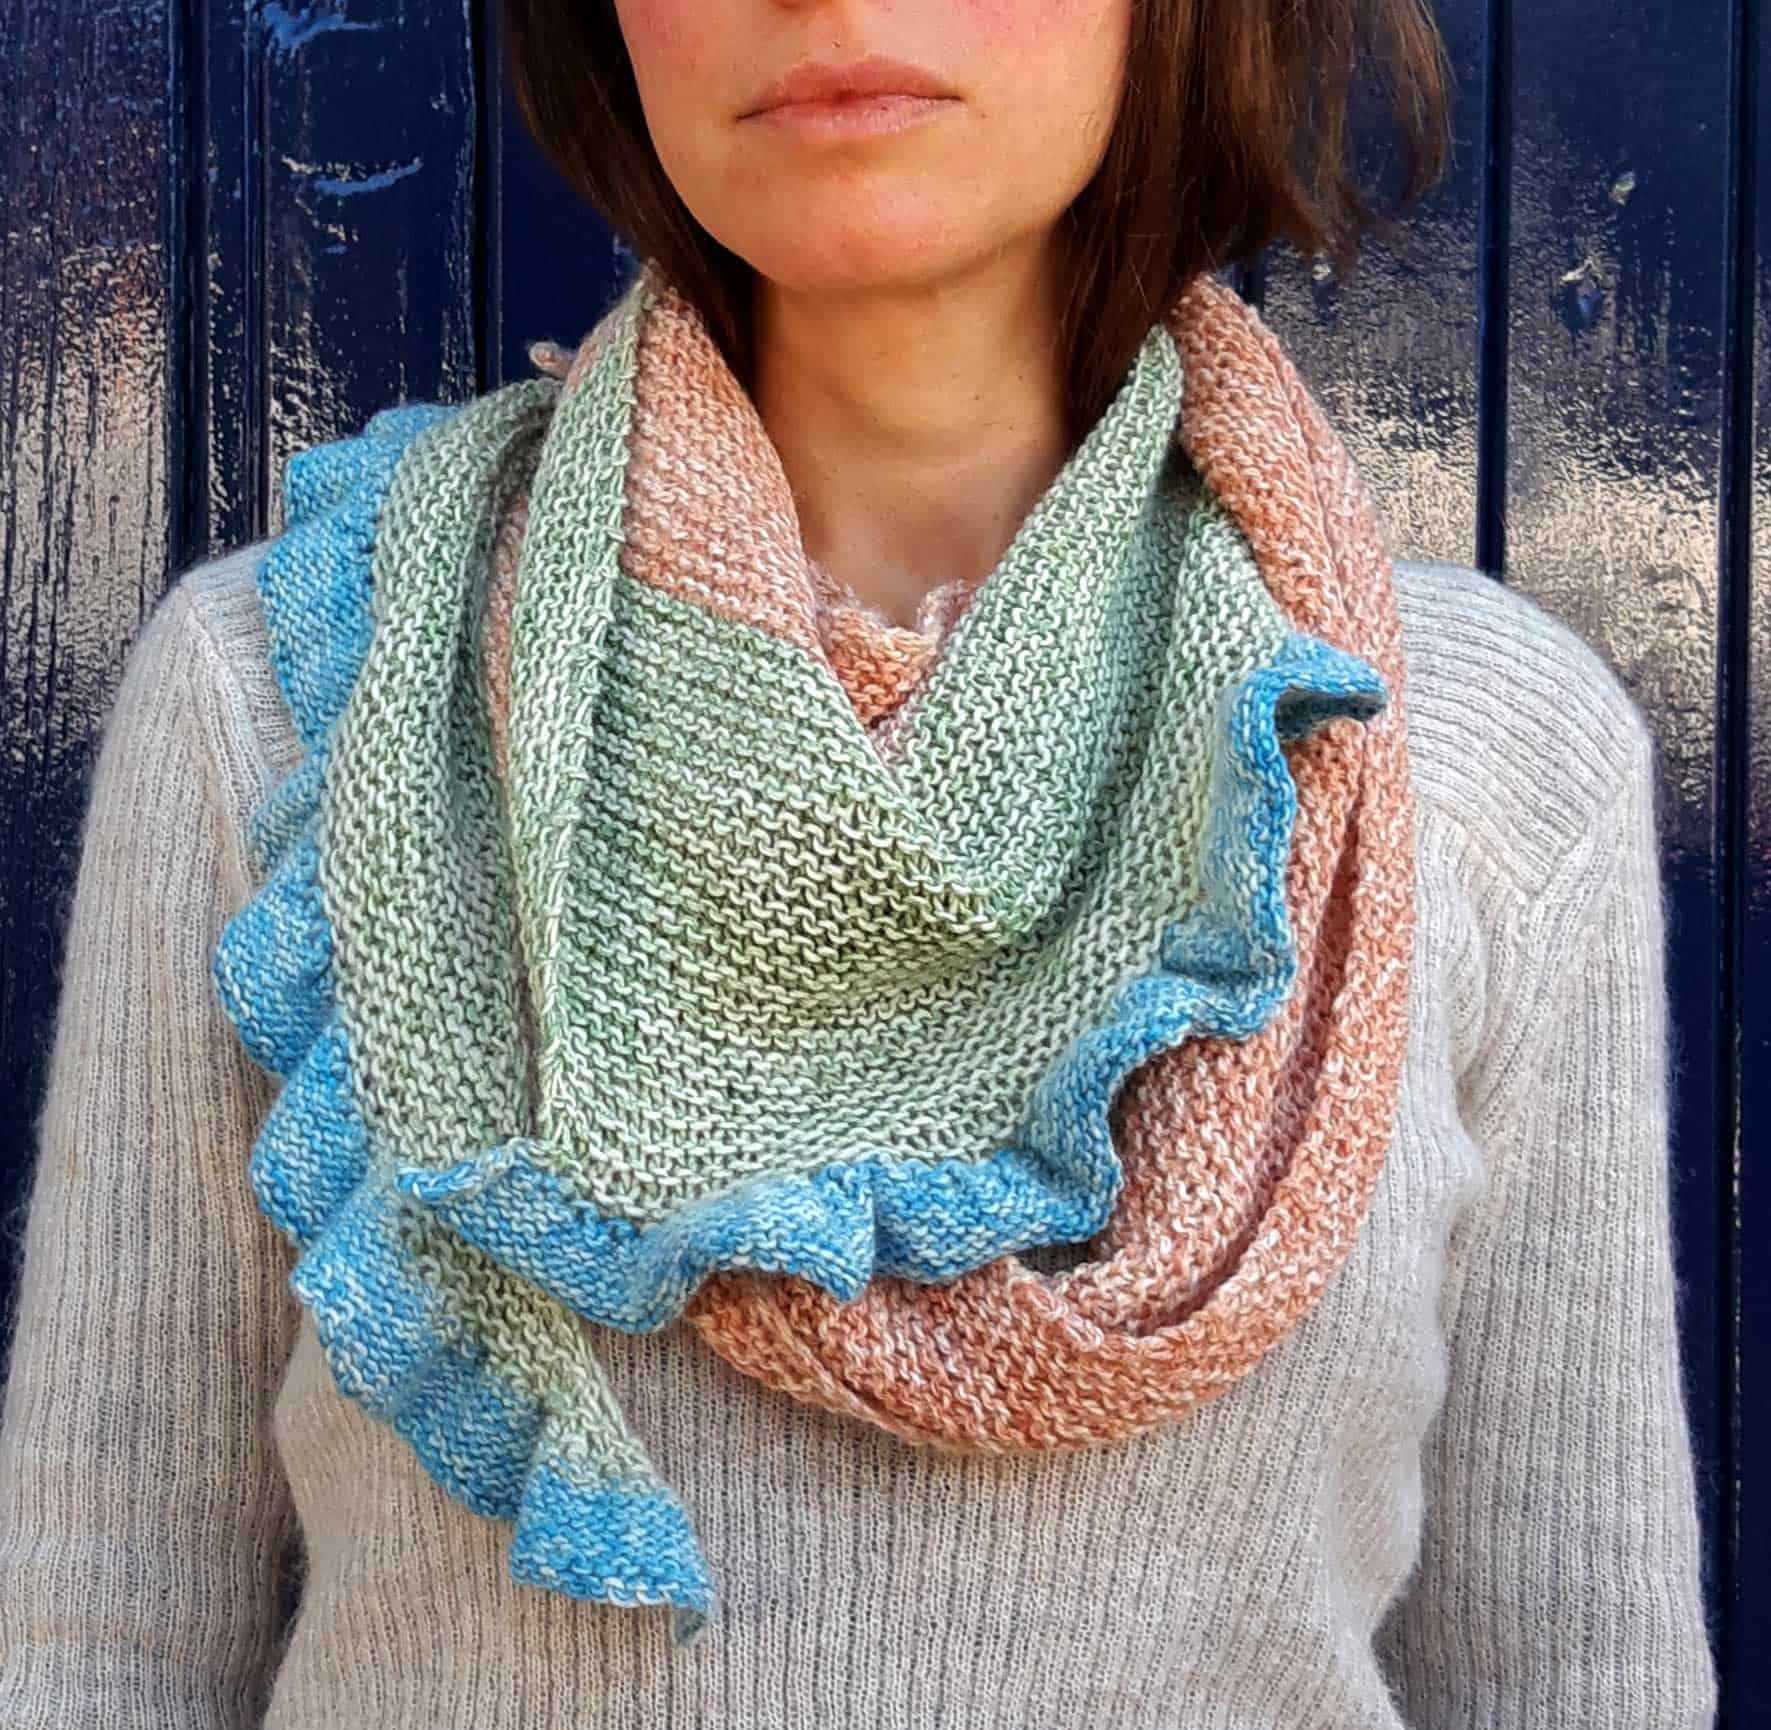 Asymmetric knitting scarf